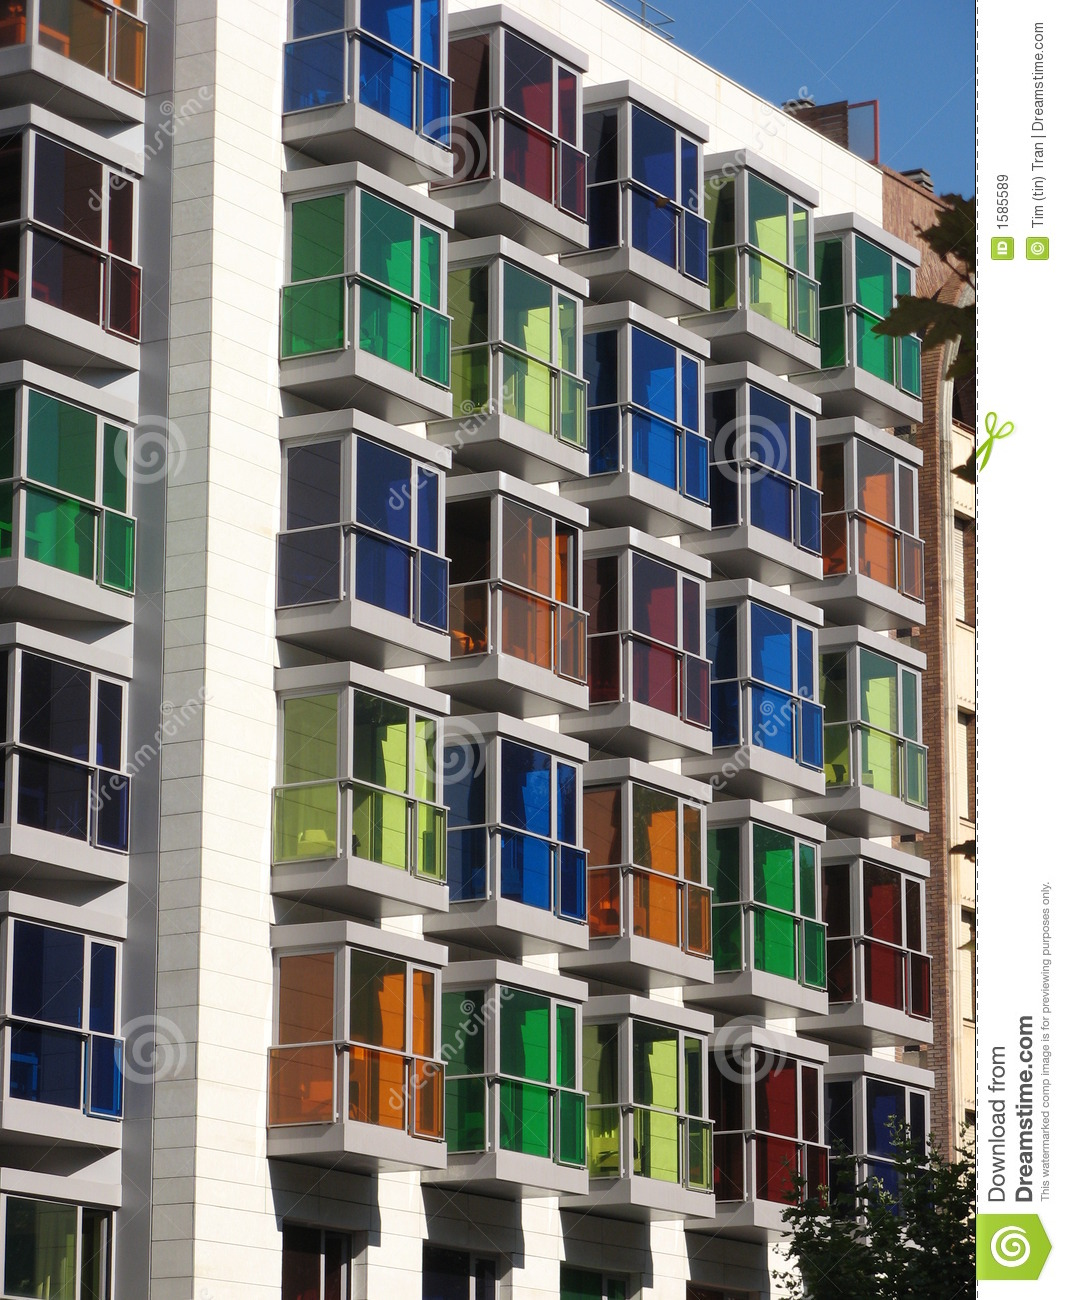 Colorful Buildings: Colorful Building Stock Image. Image Of Hotel, Colorful